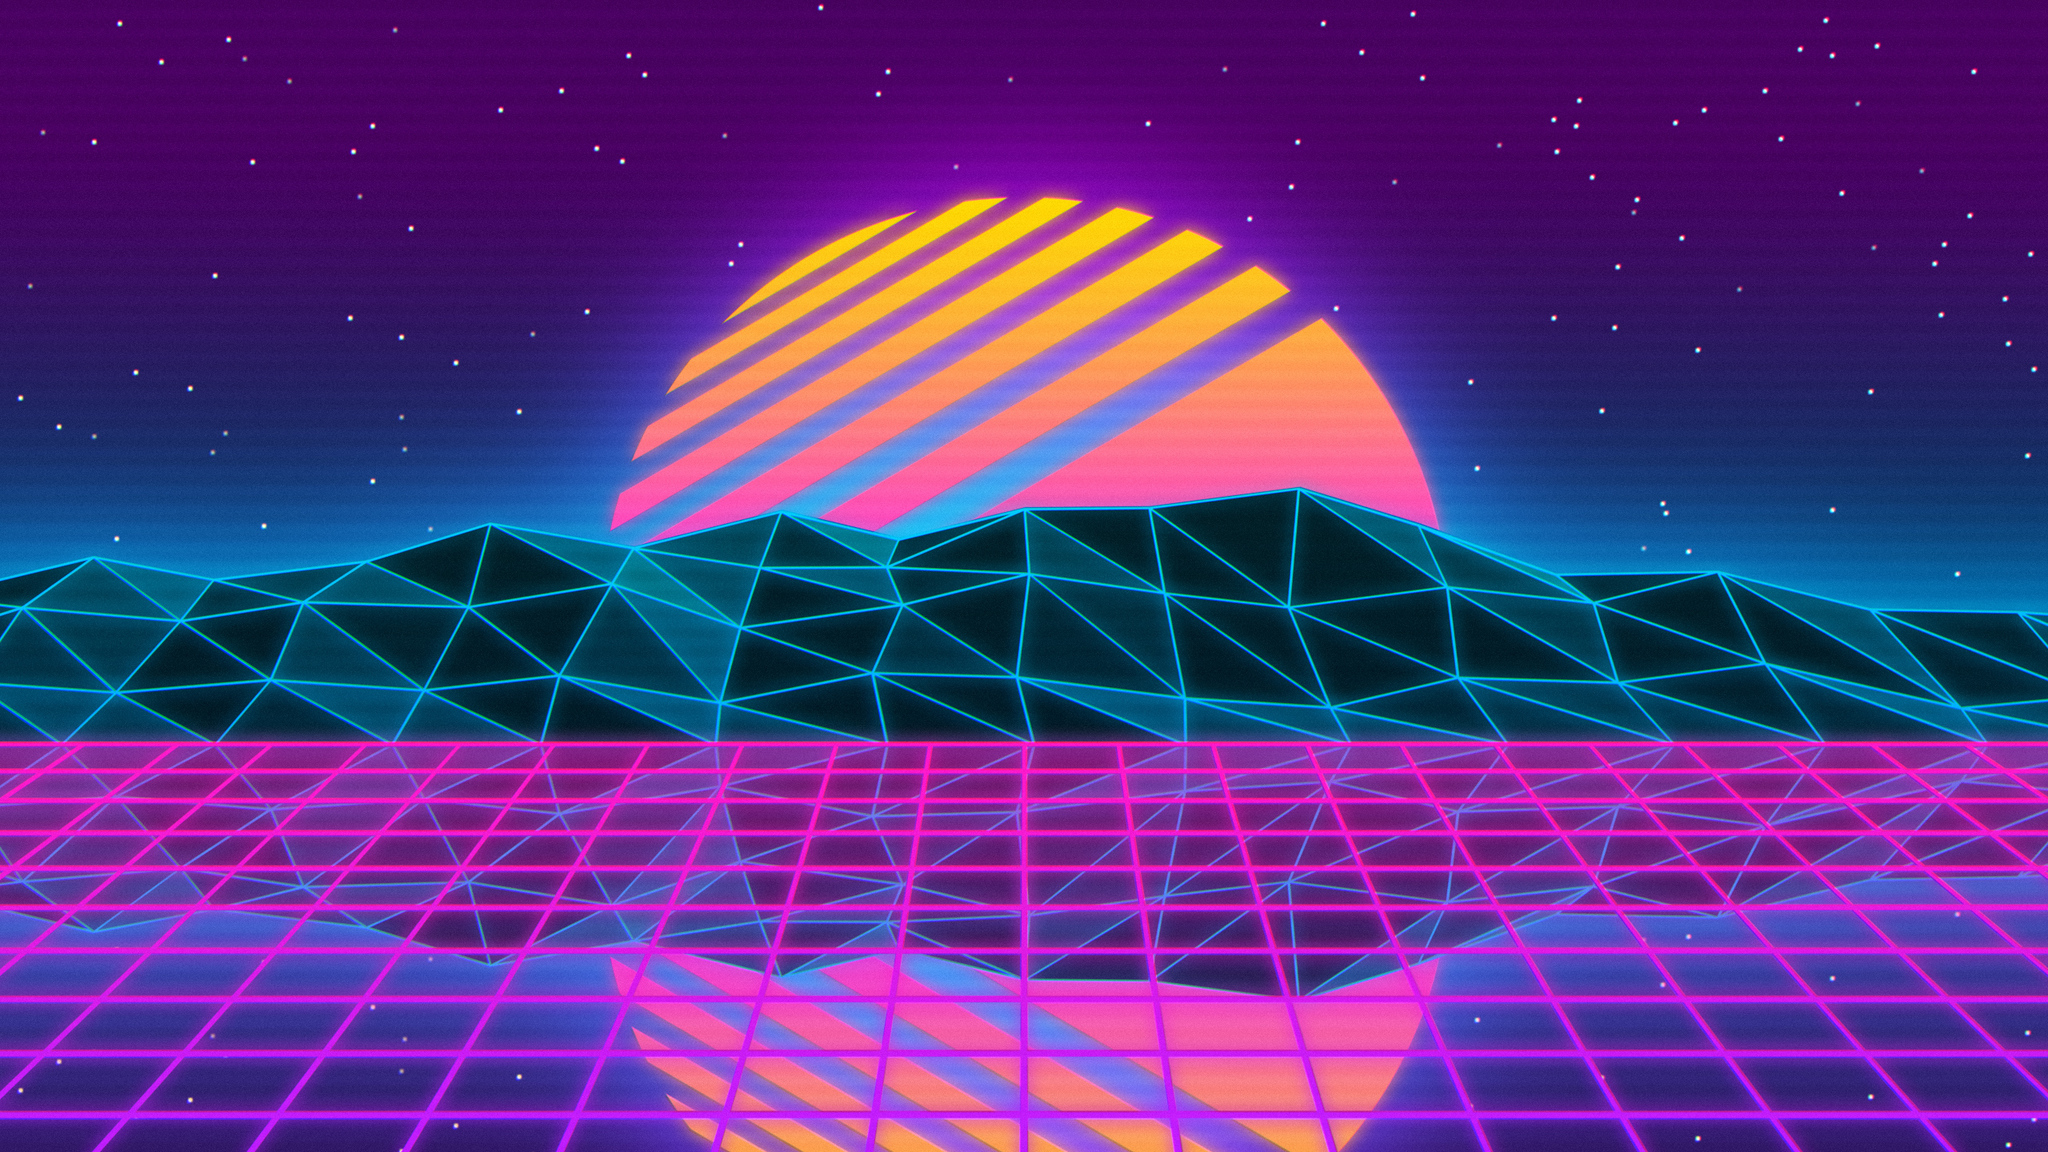 2048x1152 Vaporwave 2048x1152 Resolution Hd 4k Wallpapers